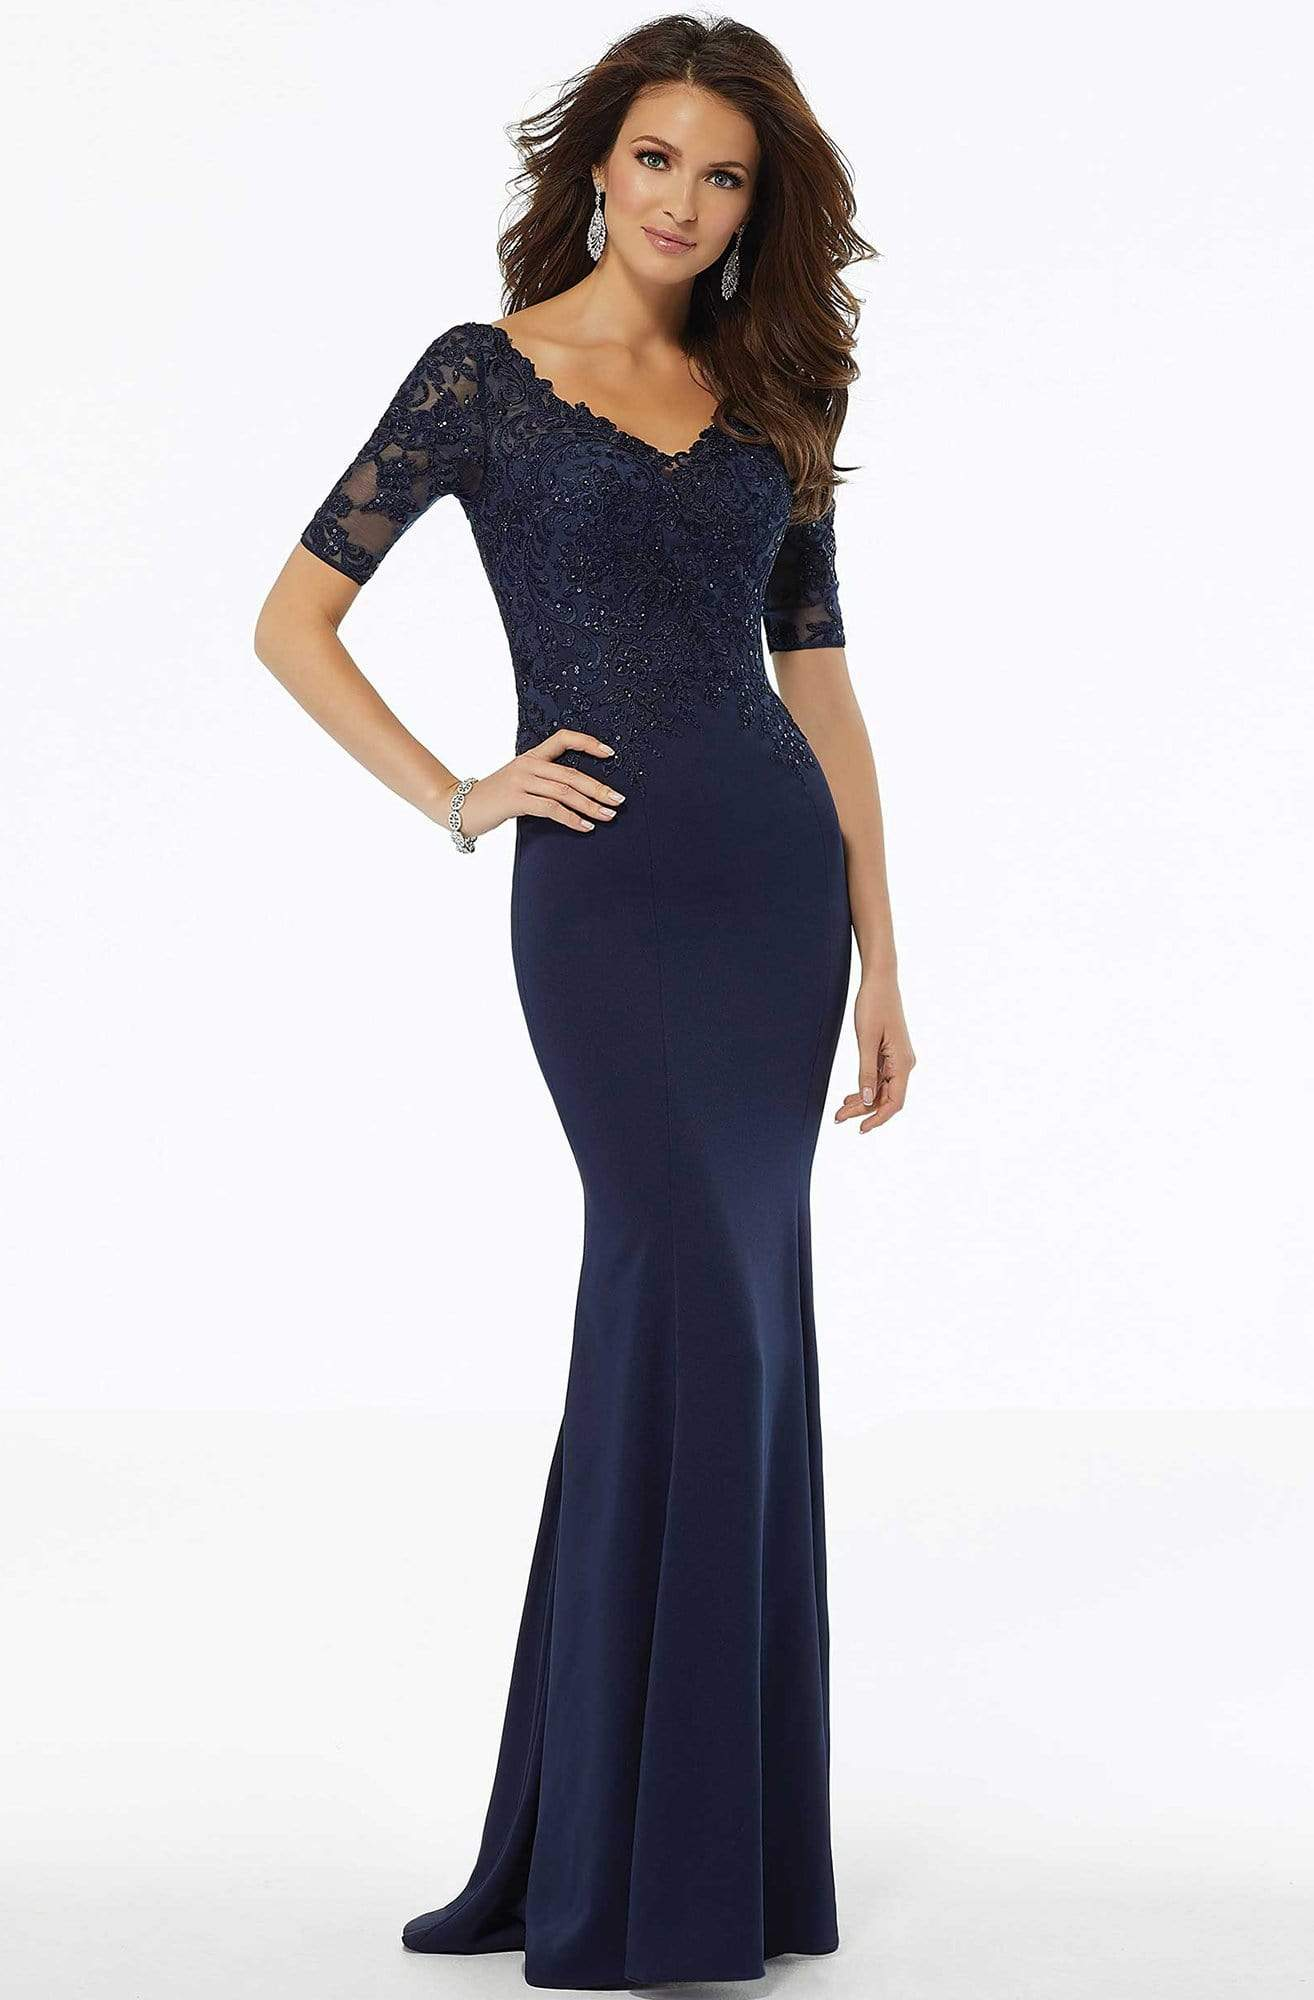 MGNY By Mori Lee - 72108 Beaded Lace Crepe Sheath Dress Mother of the Bride Dresses 2 / Navy